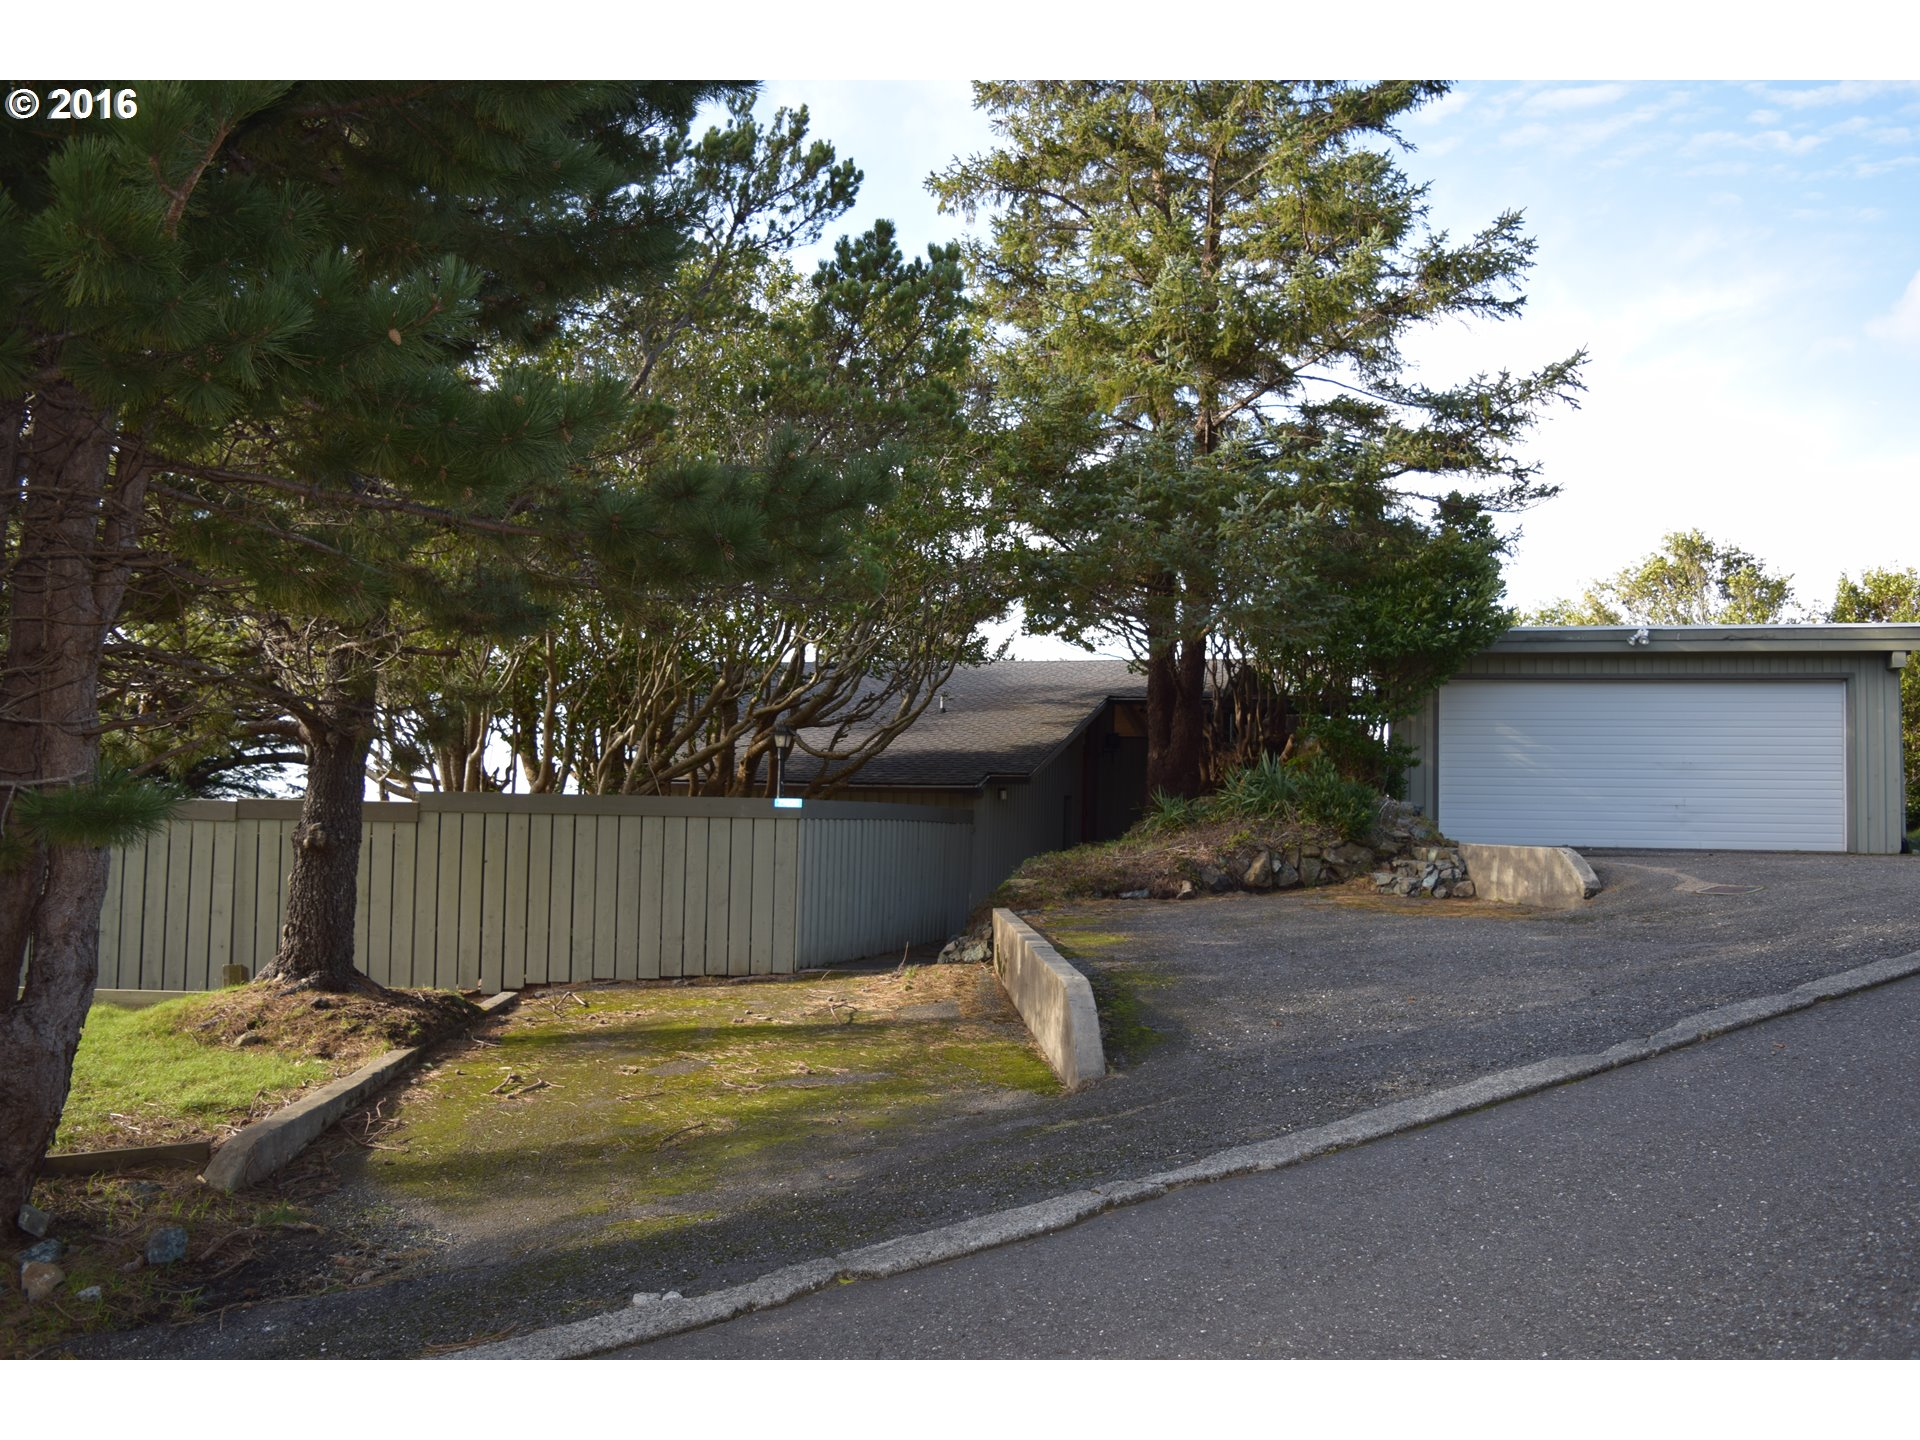 29820 HOUND DOG RD Gold Beach, Brookings Home Listings - Pacific Coastal Real Estate